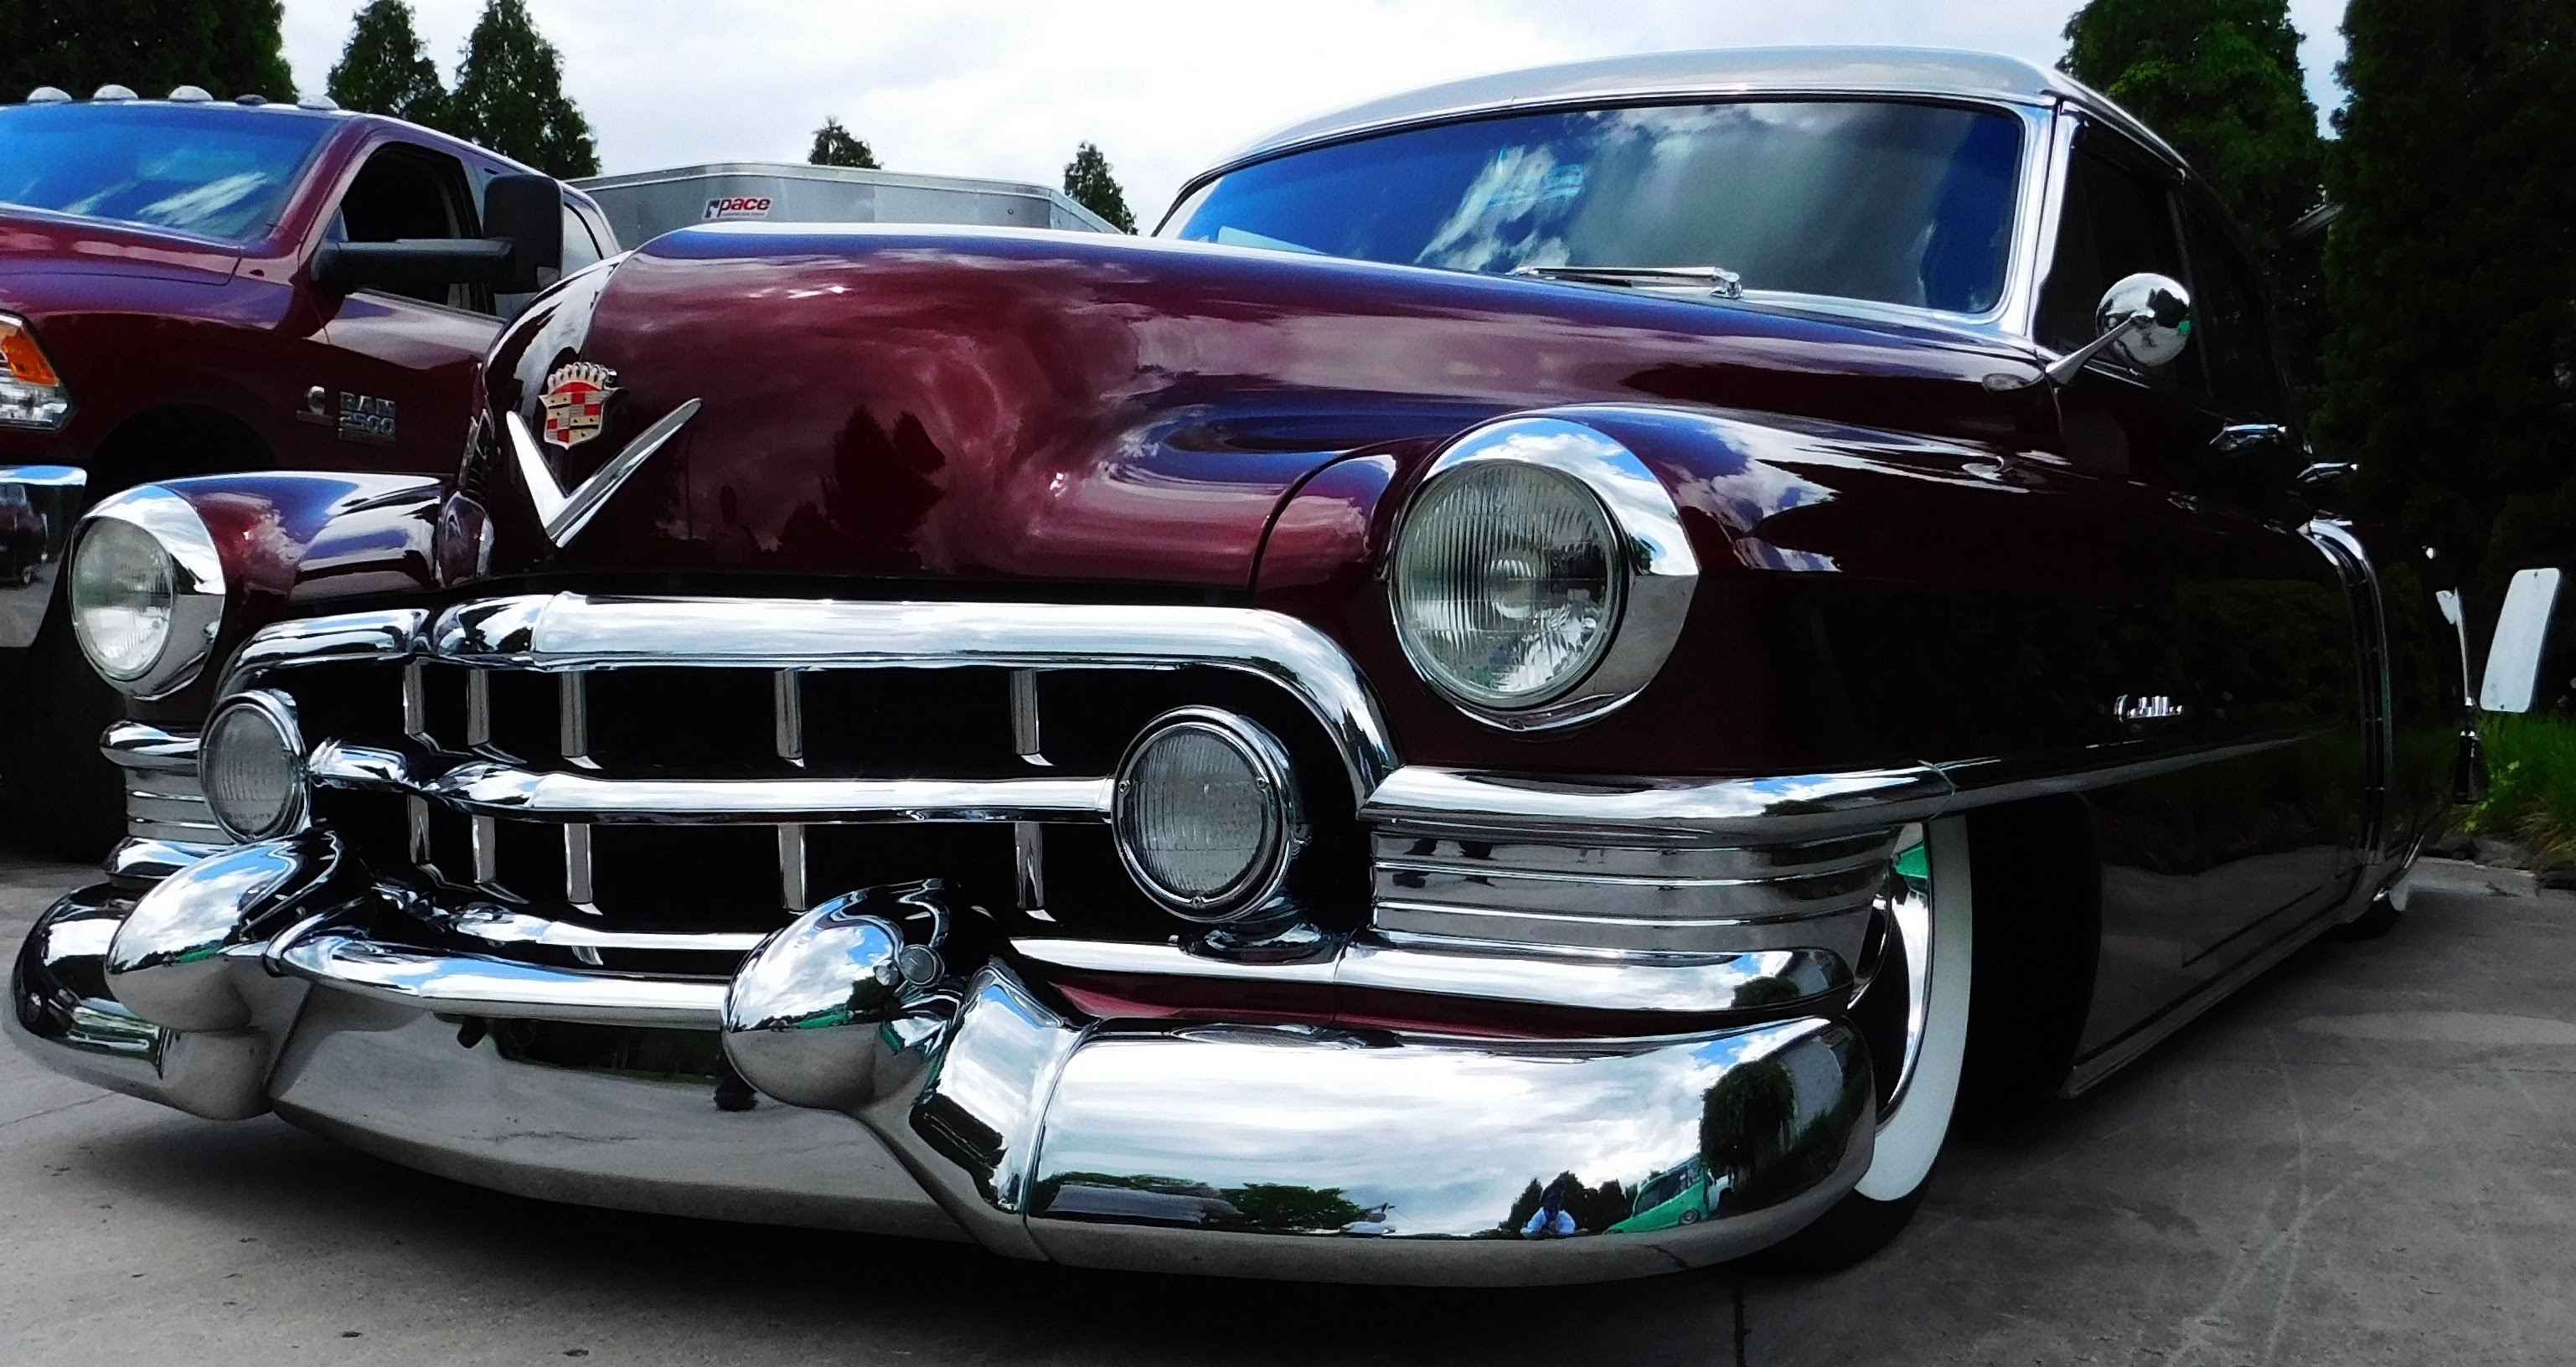 1950 Cadillac E62 Street Rod Quot Lotacad Quot Griffey S Hot Rods